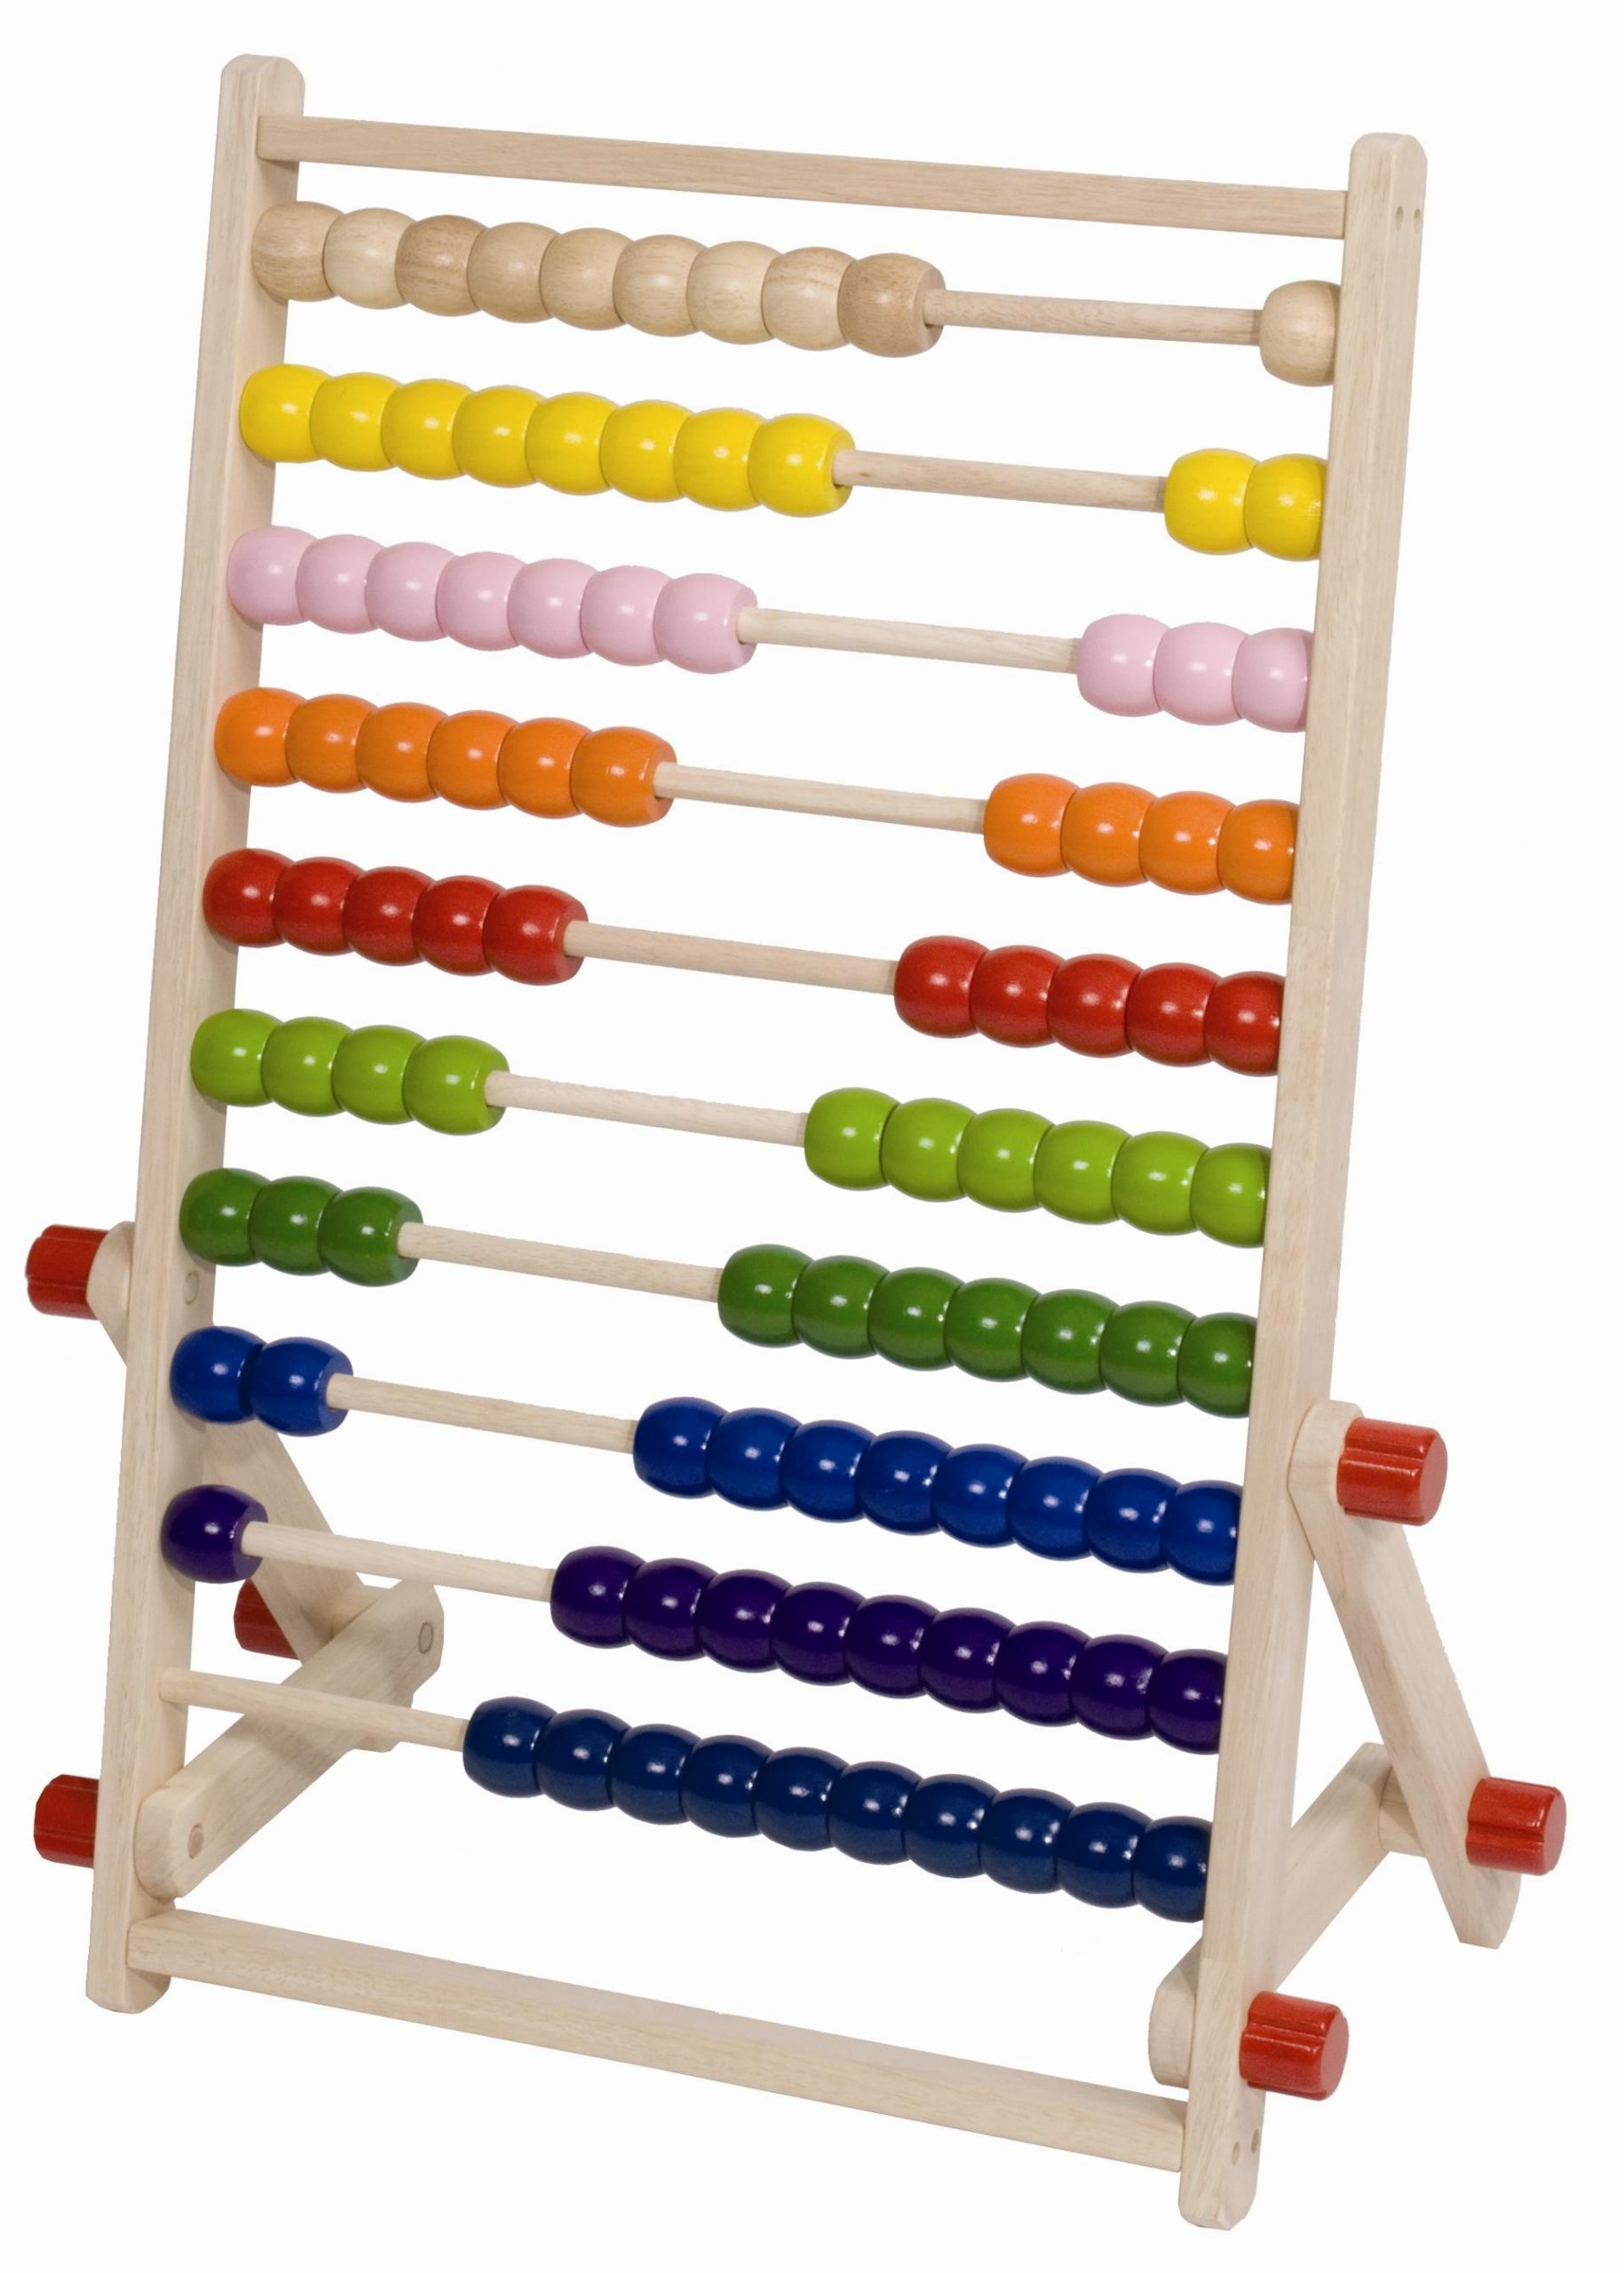 Giant Wooden Abacus